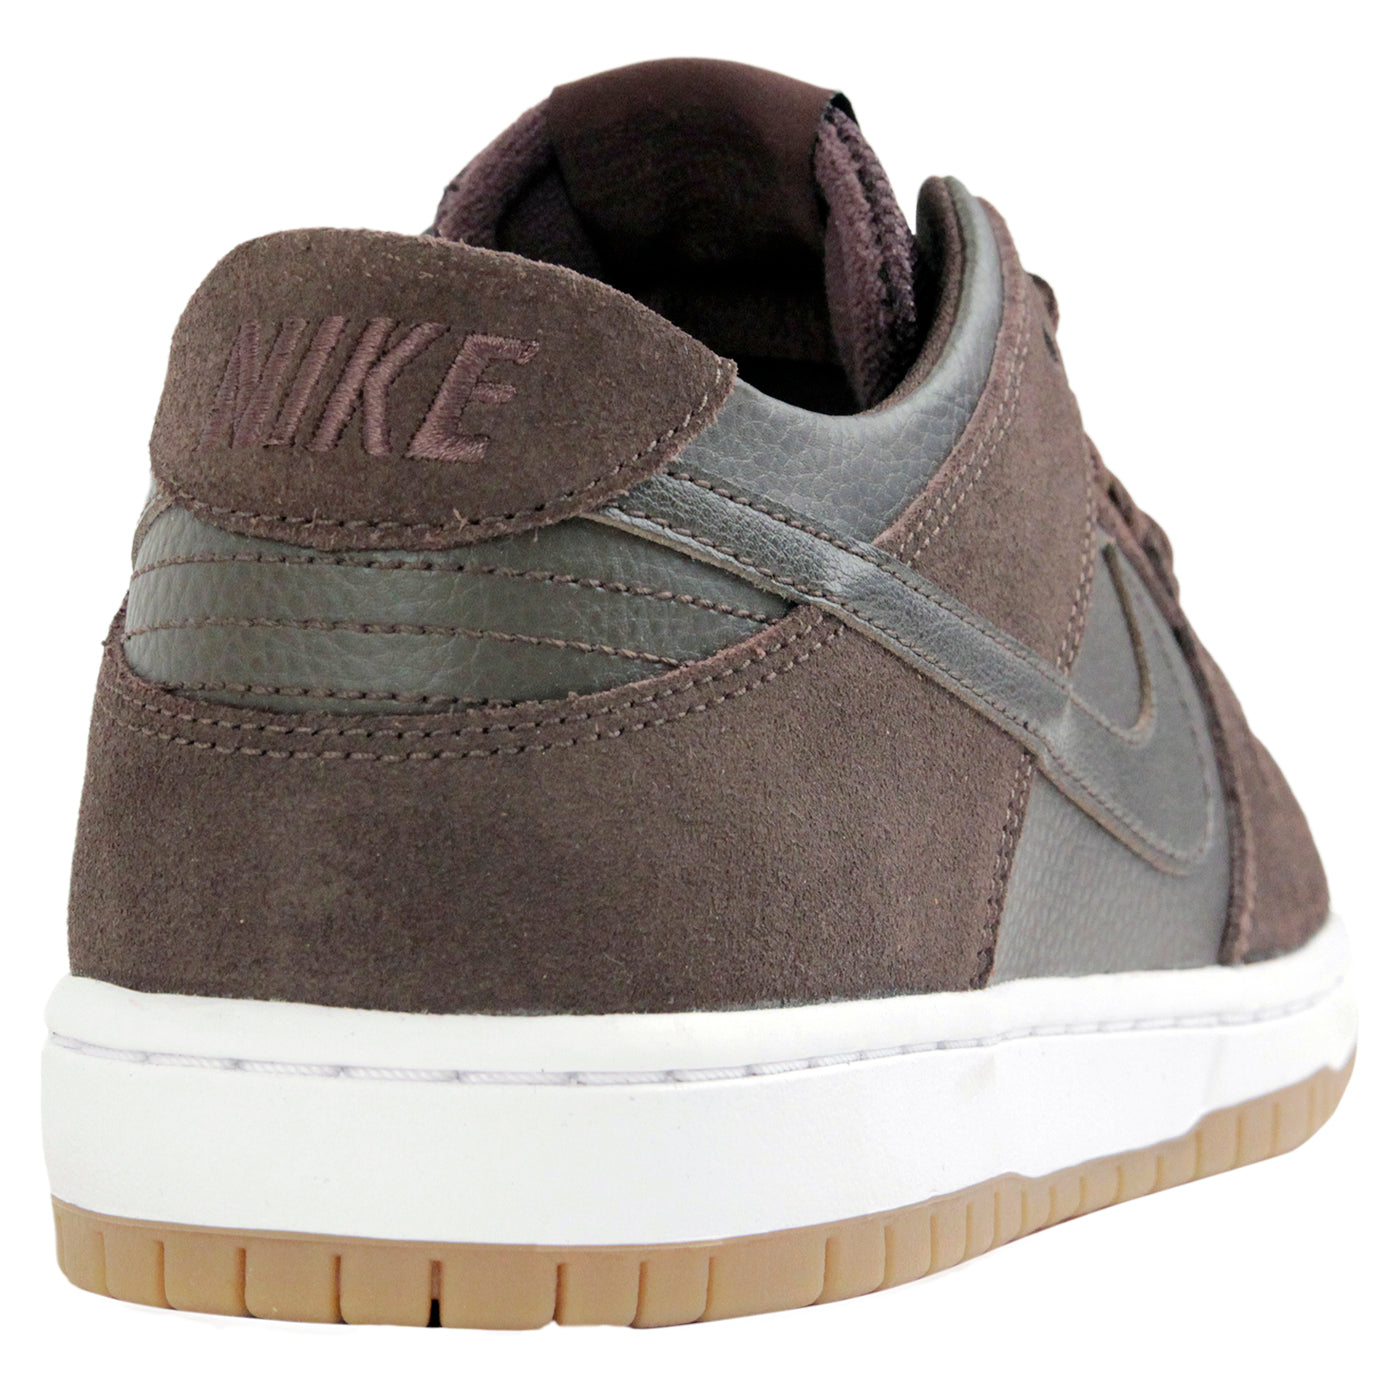 detailed pictures 228a6 ff16f Dunk Low Pro Ishod Wair Shoes in Baroque Brown   Baroque Brown ...